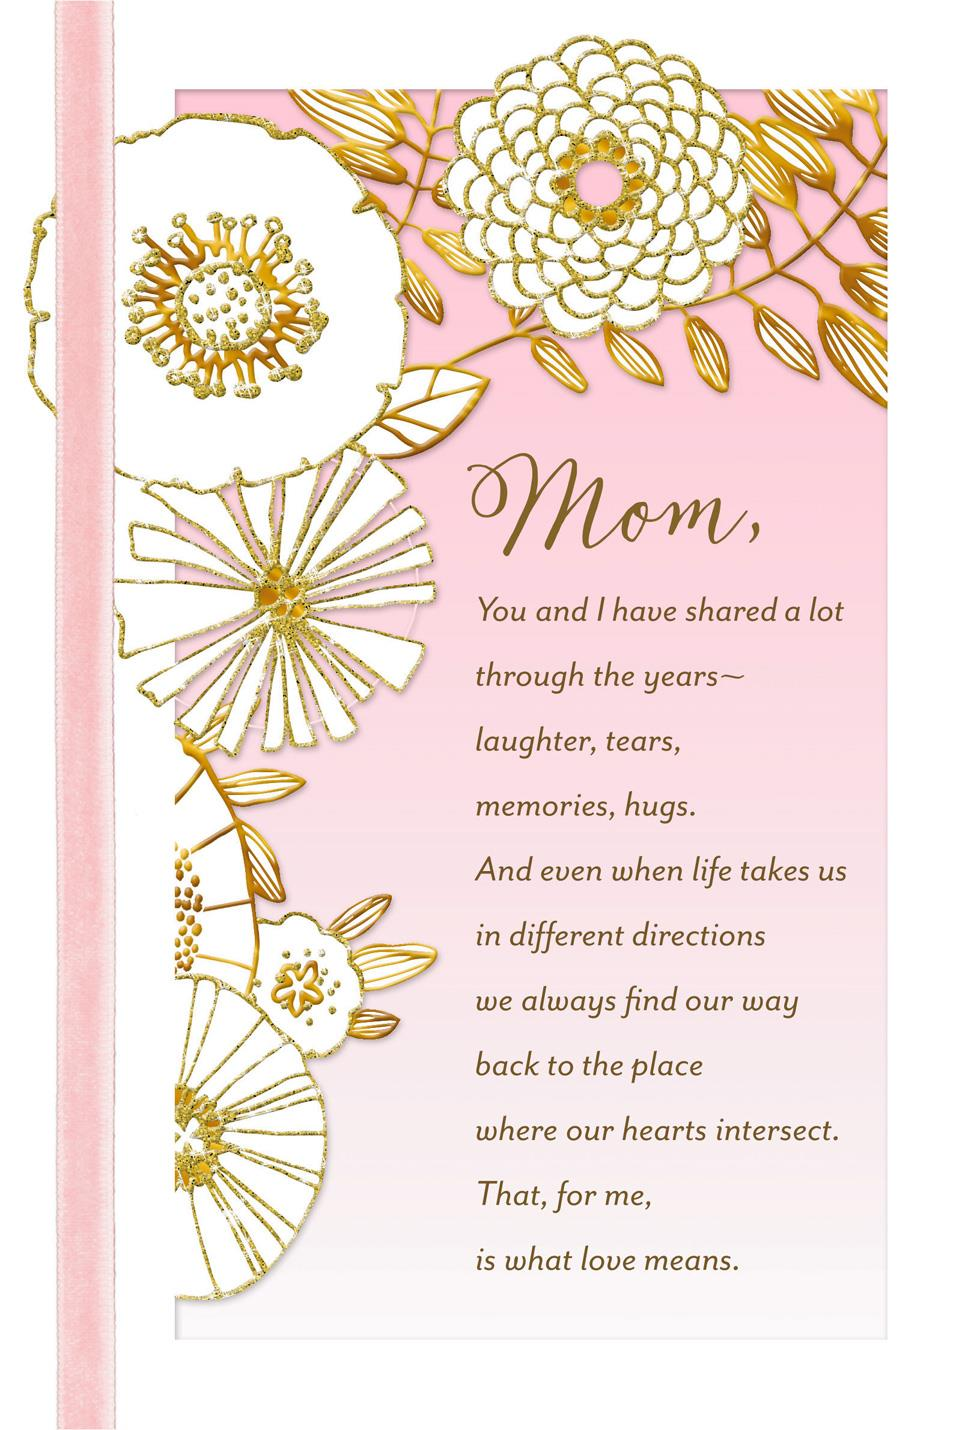 Gift For Mom On Wedding Day: My Mom, My Friend Religious Mother's Day Card